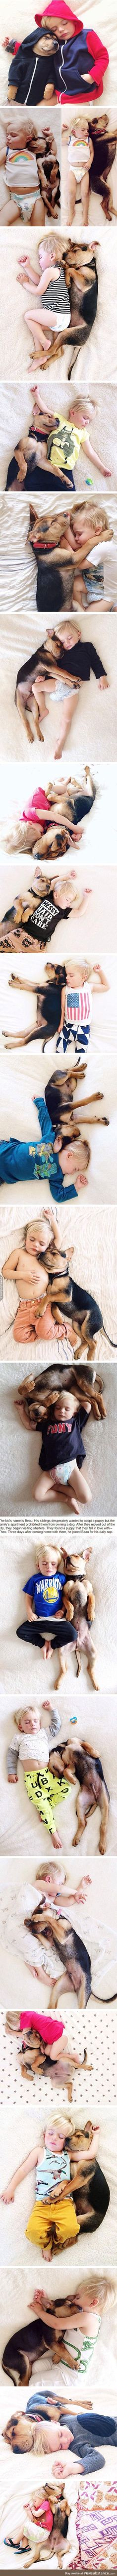 This toddler napping with his best friend